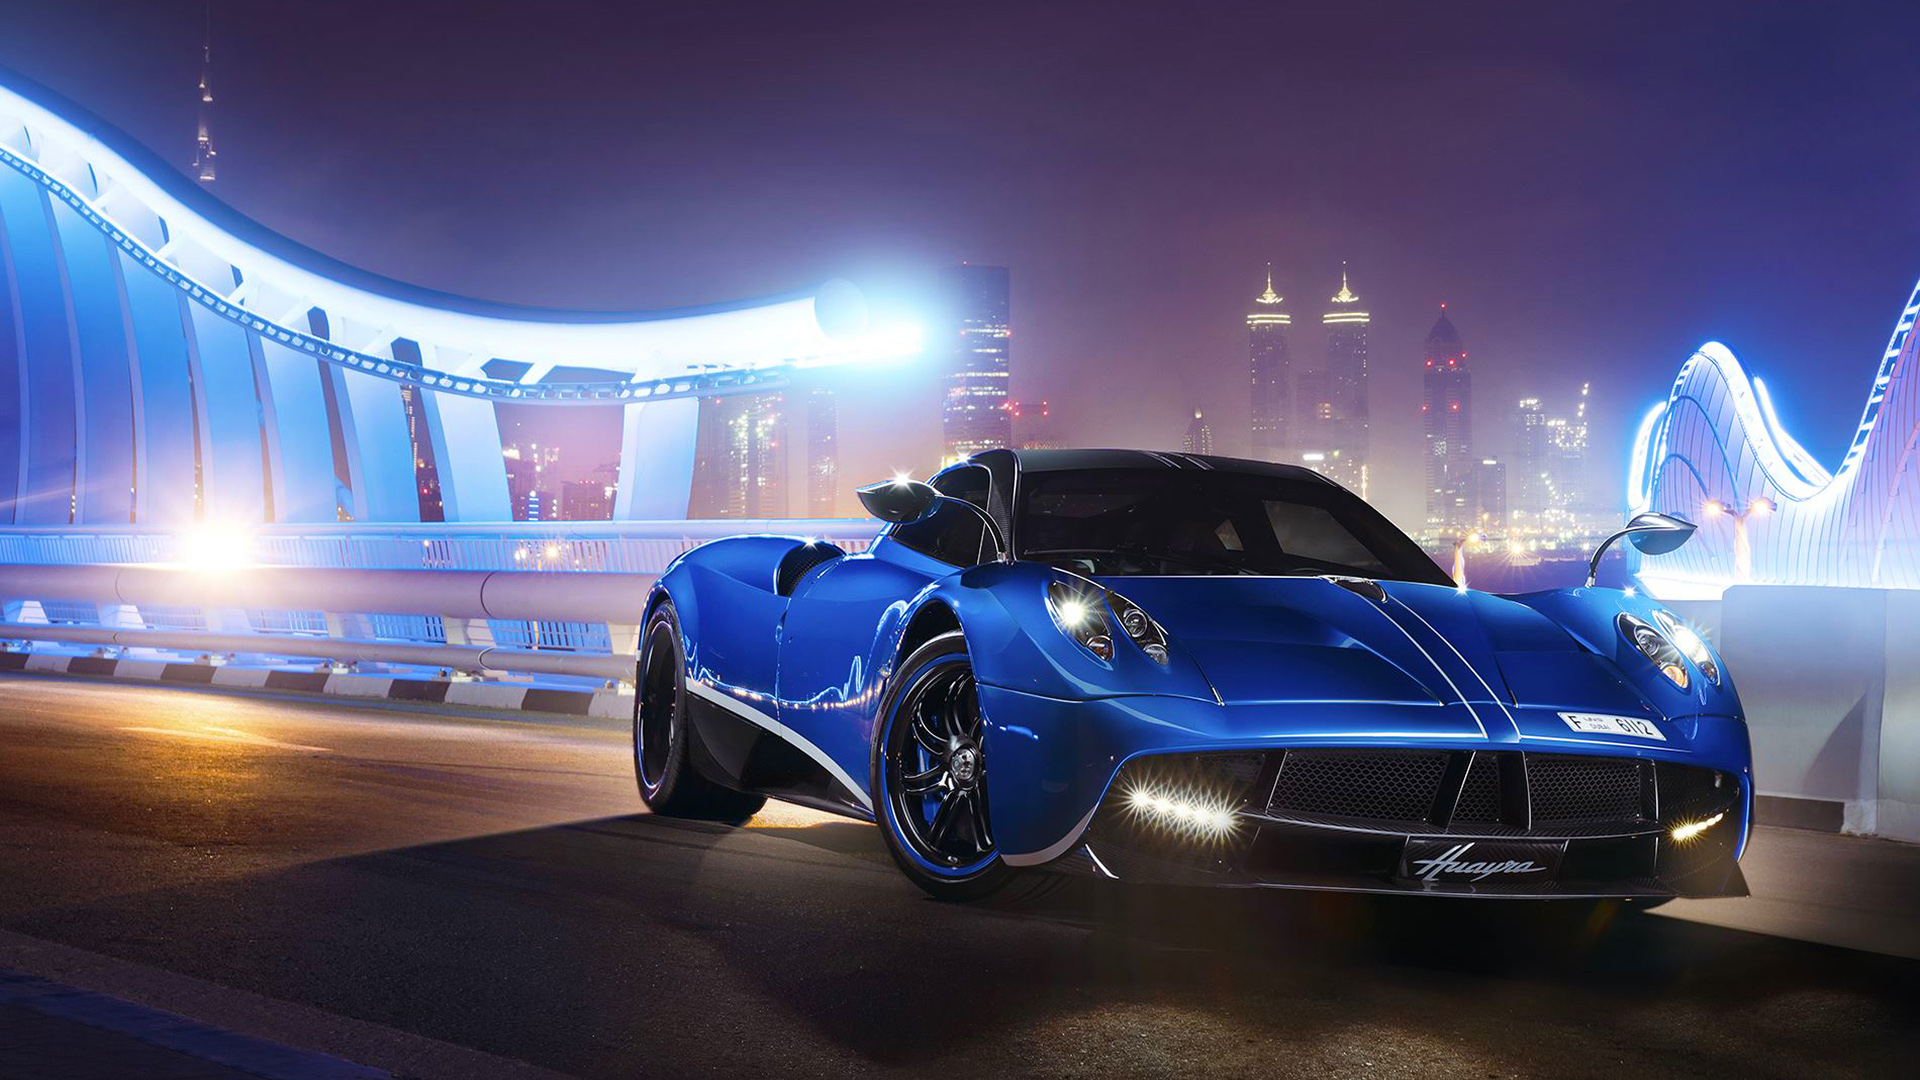 Car Wallpapers 4k Bentely Pagani Huayra Wallpaper Hd Car Wallpapers Id 5686